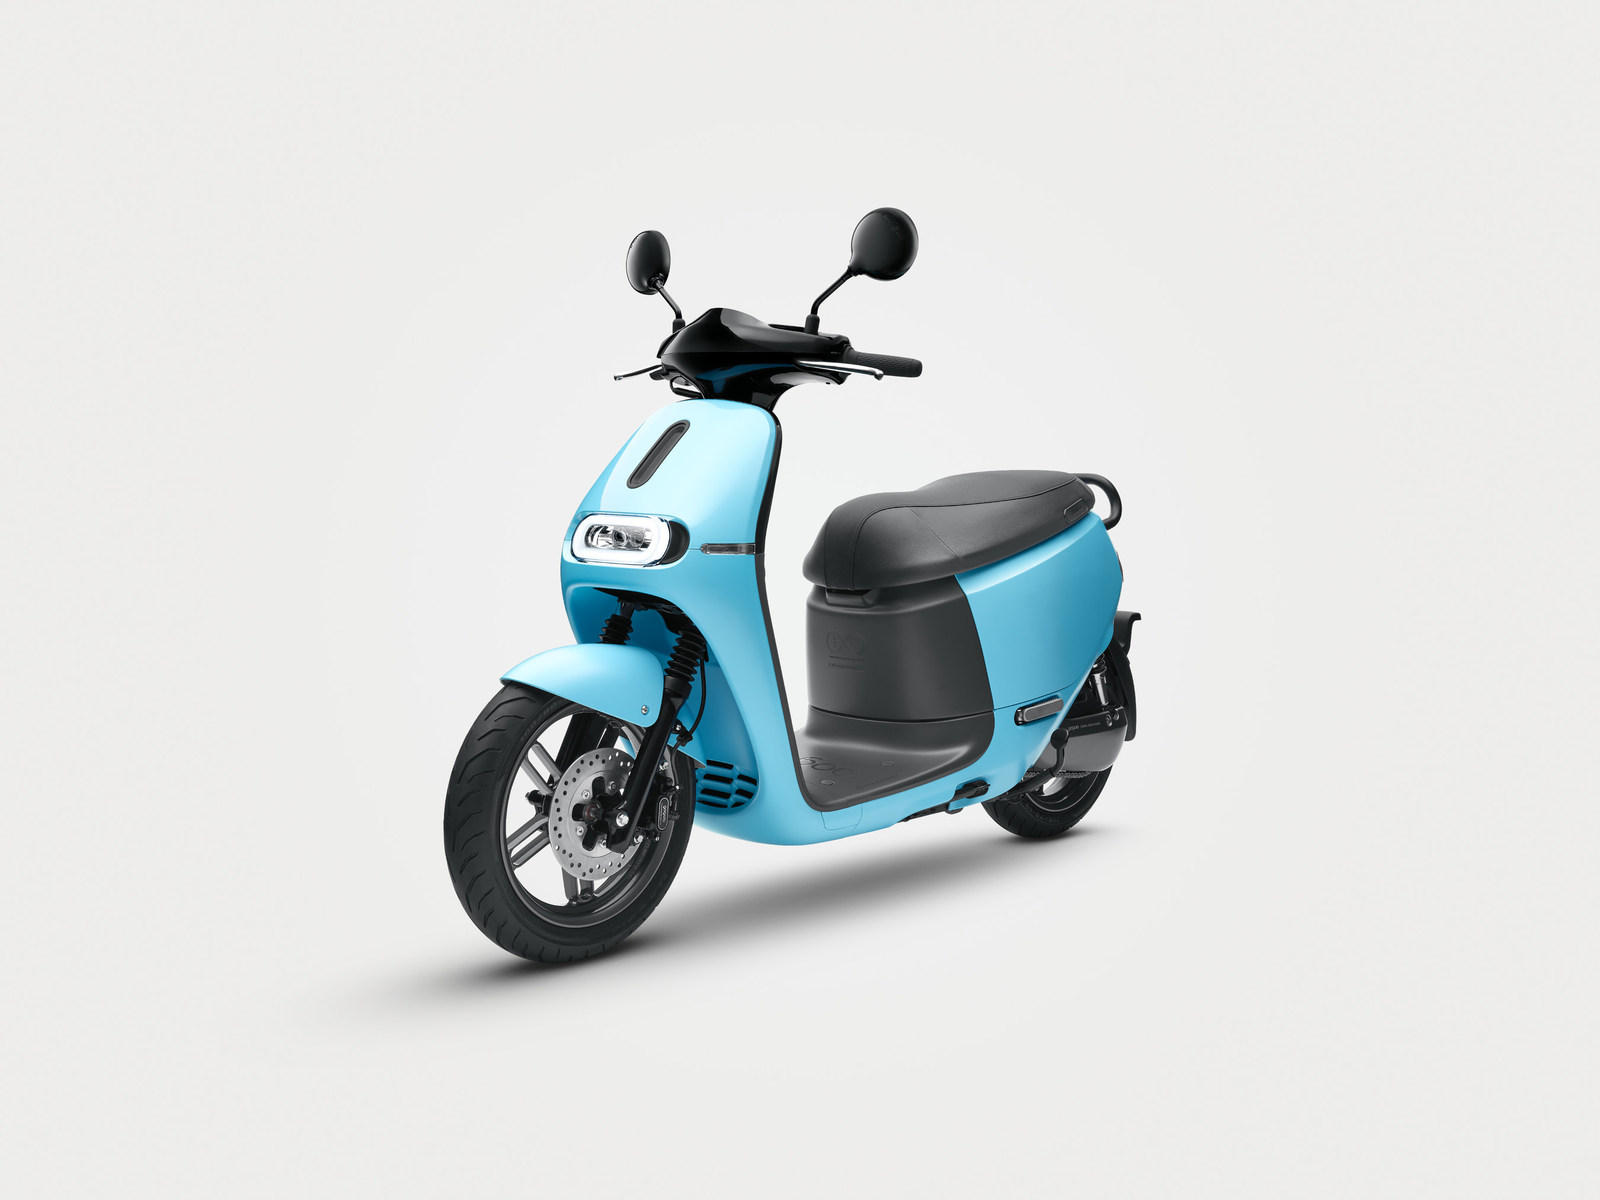 Gogoro 2 priced cheaper than iPhones | Taiwan News